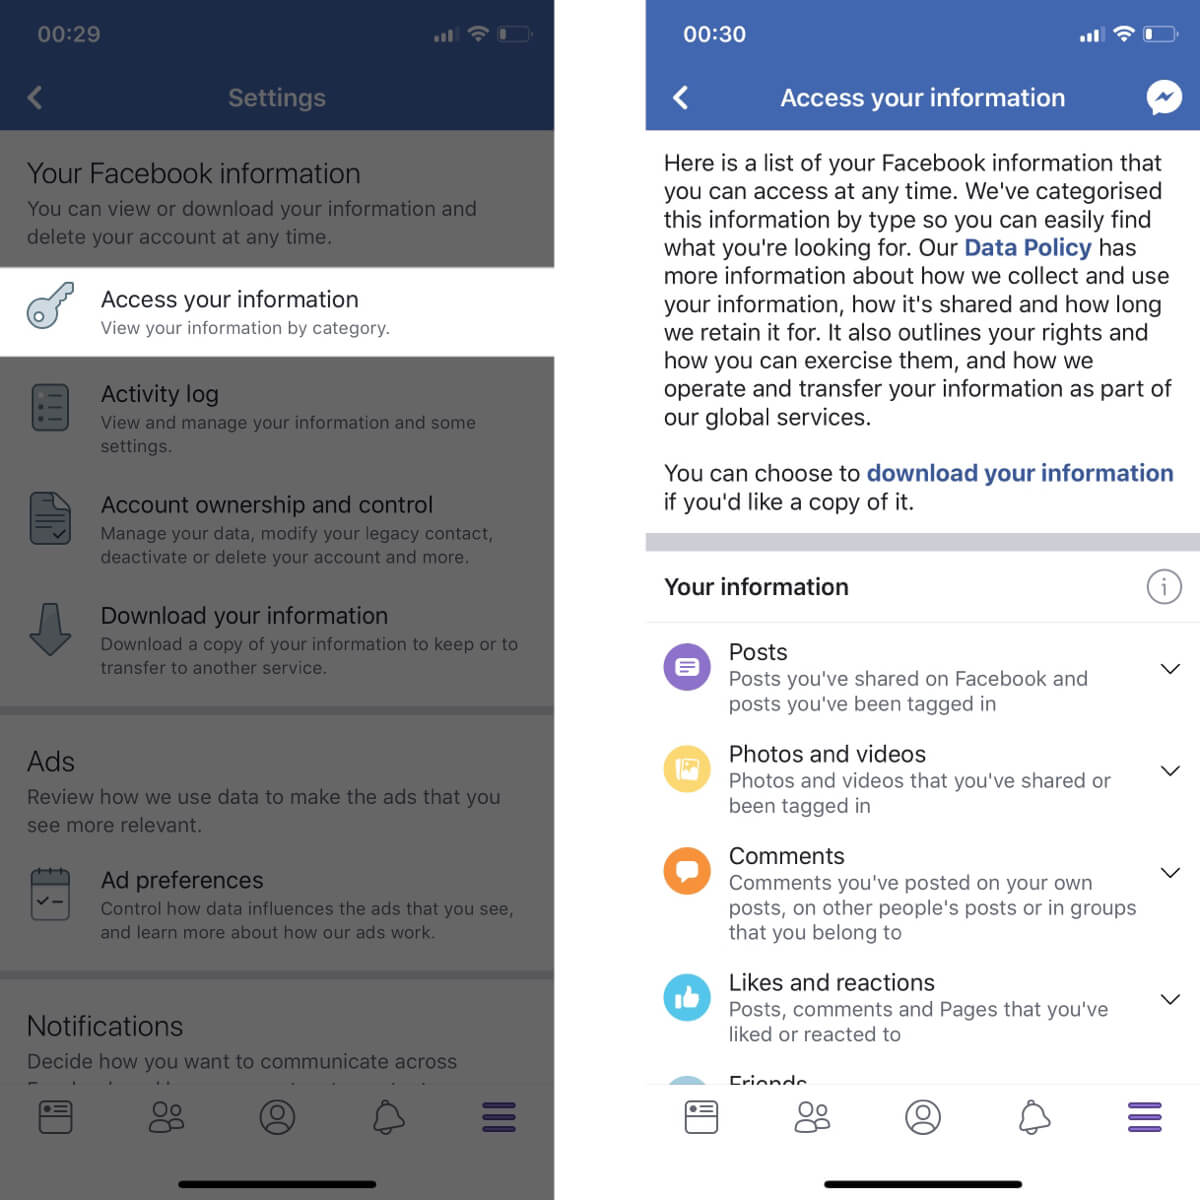 Screenshots showing how to open the access your information settings on Facebook.